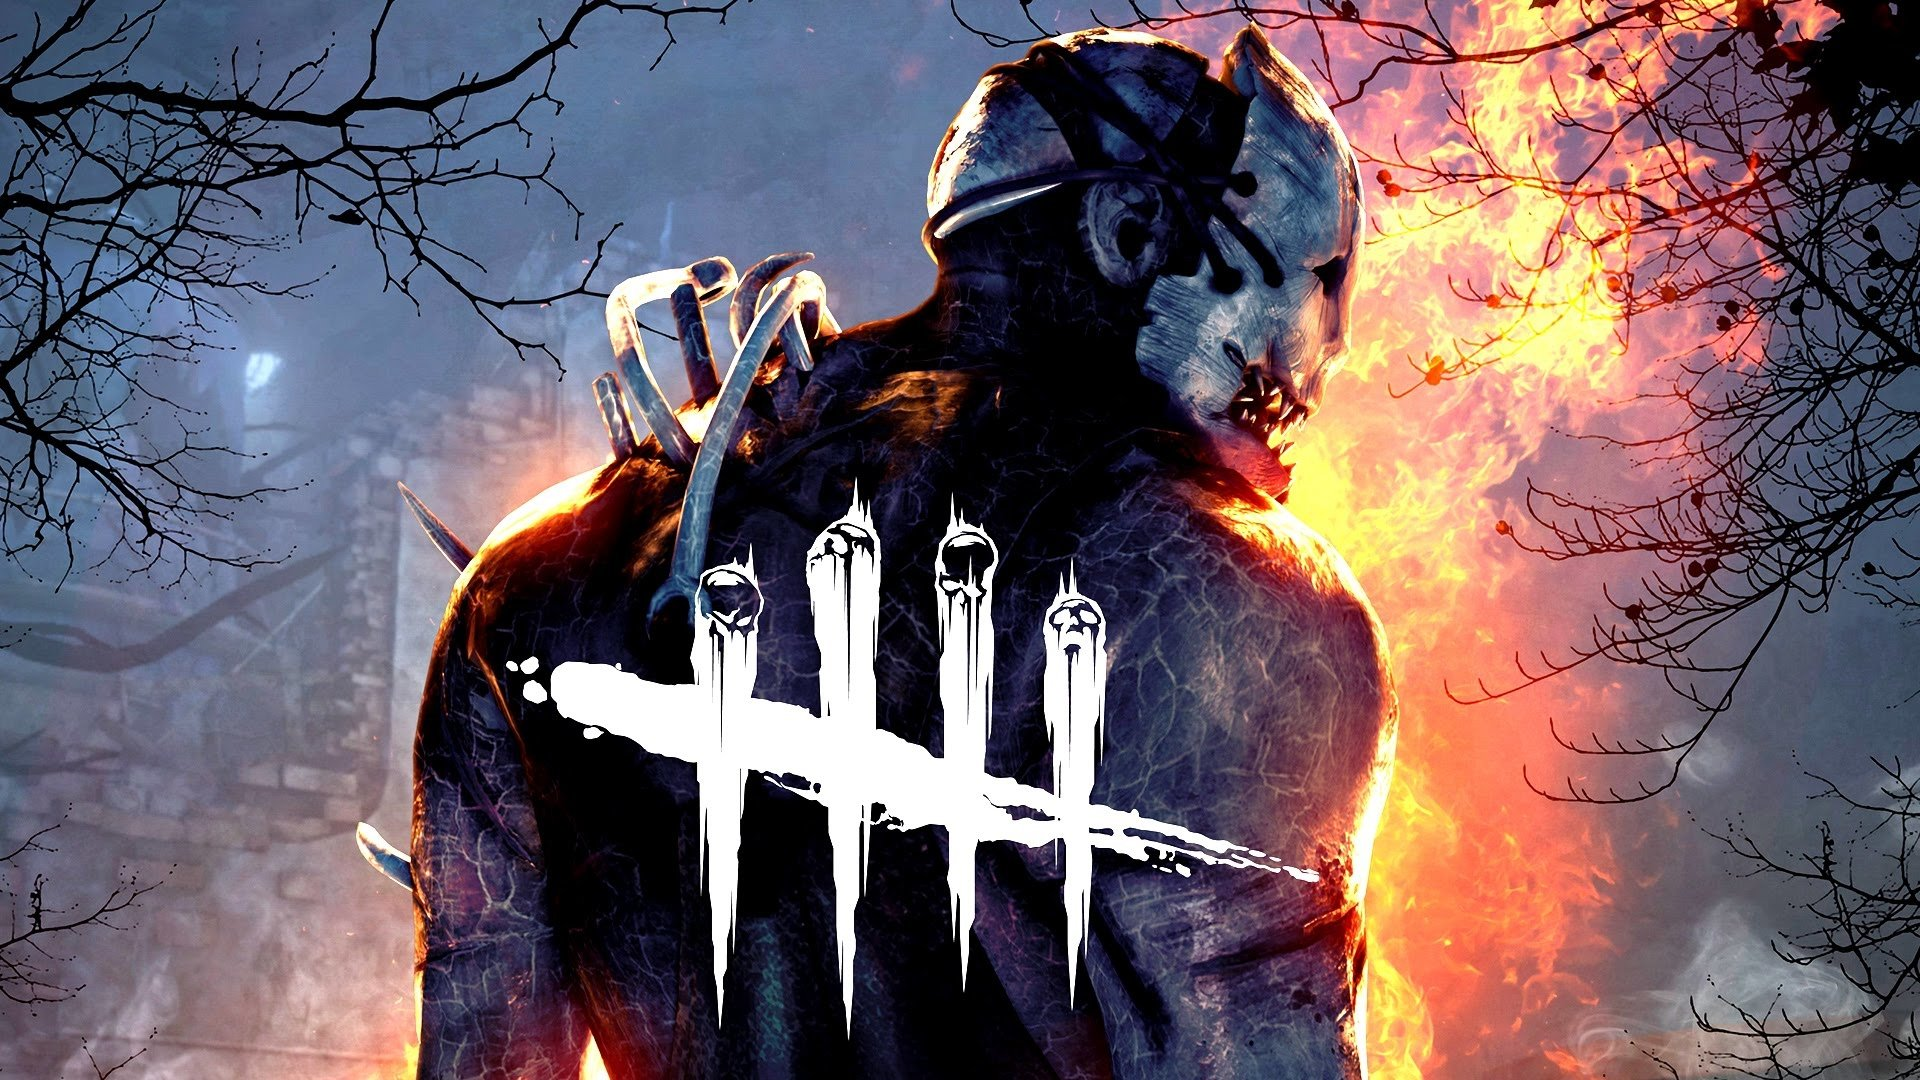 546 Dead By Daylight Hd Wallpapers Background Images Wallpaper